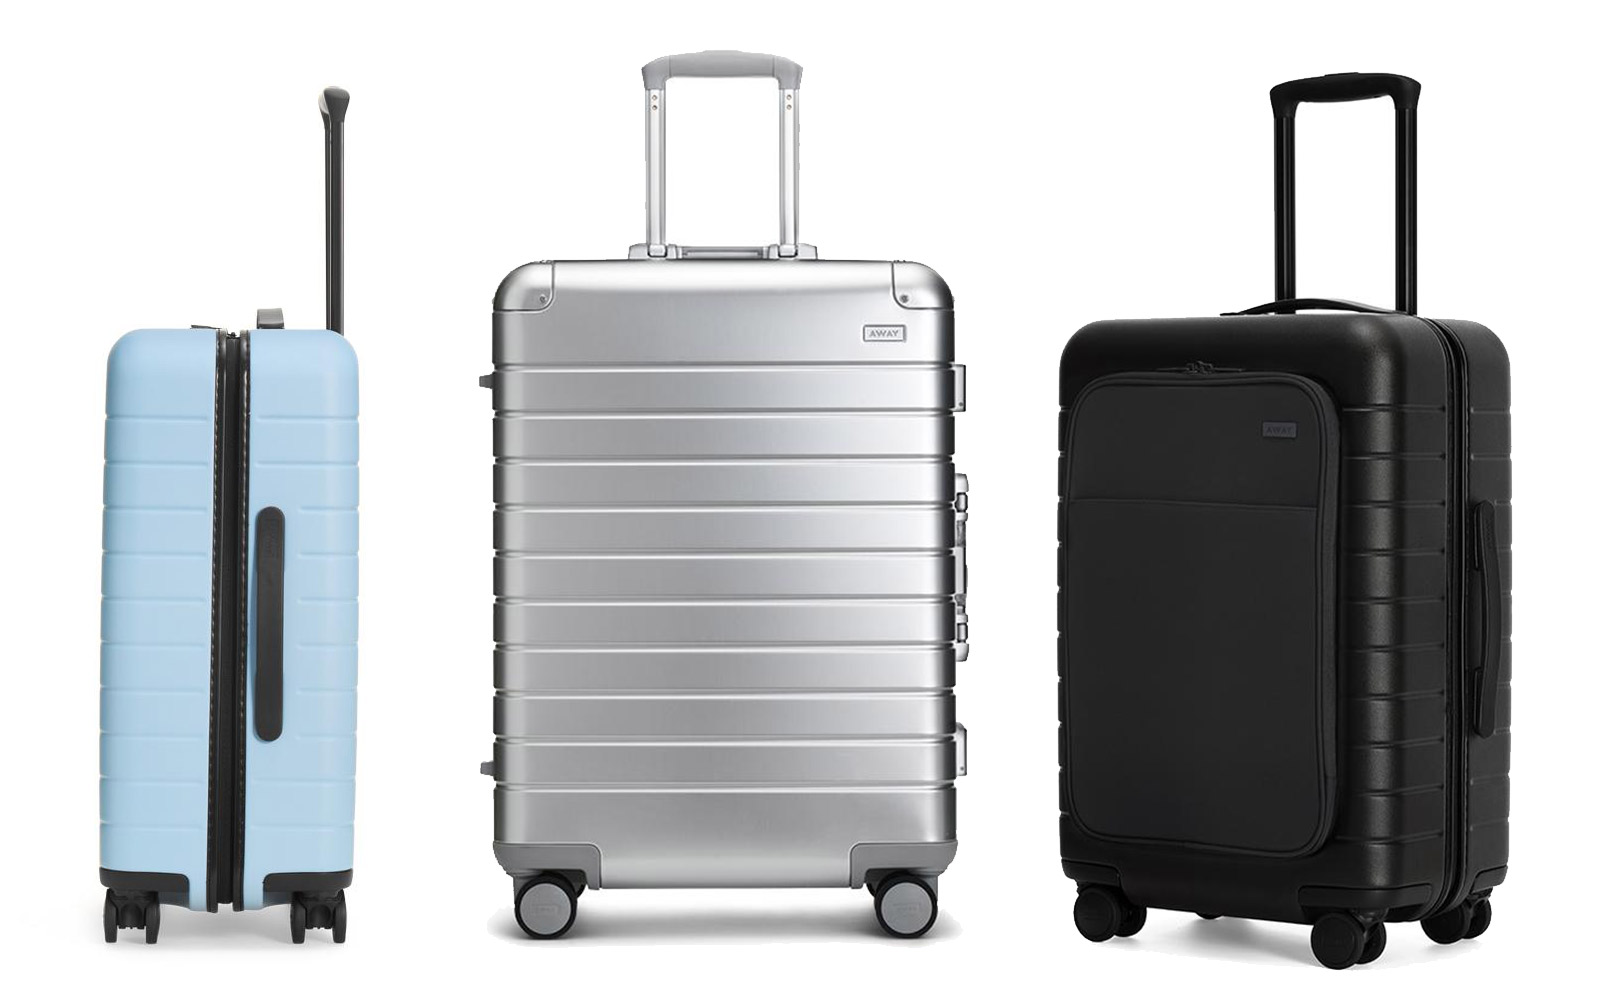 d1233b0be942 The Best Luggage Brands for Every Budget | Travel + Leisure